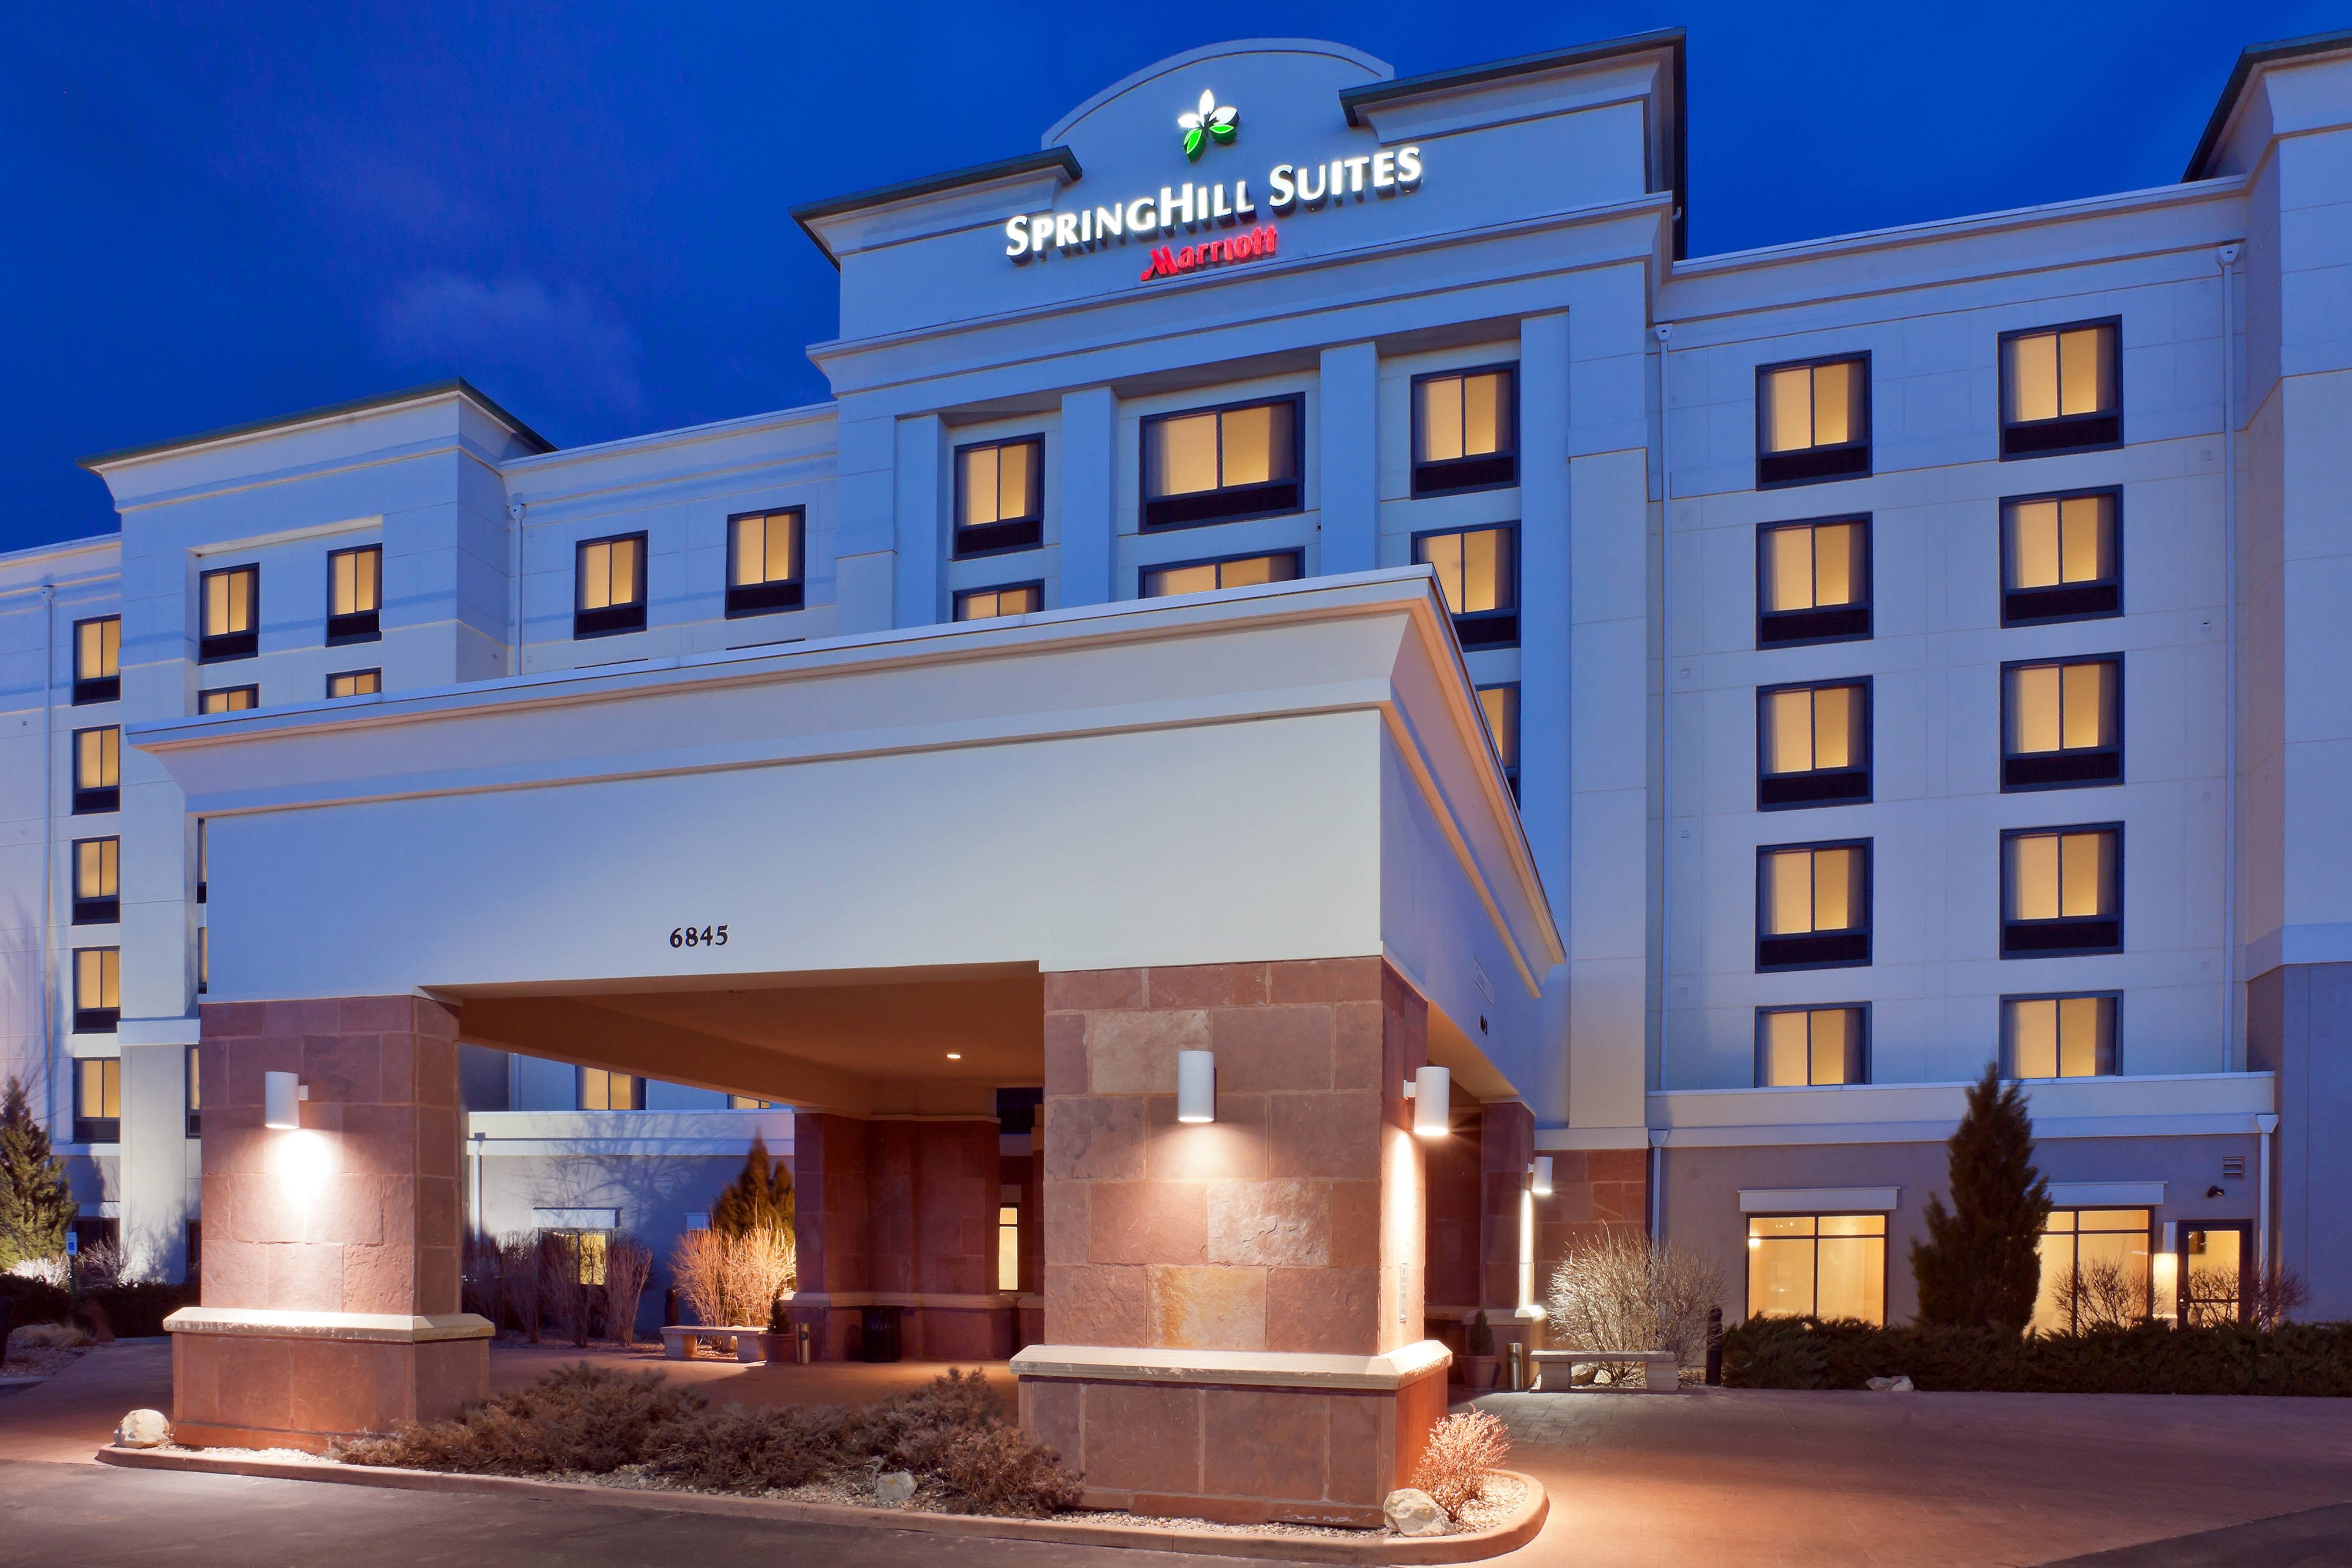 Springhill Suites Westminster Entrance